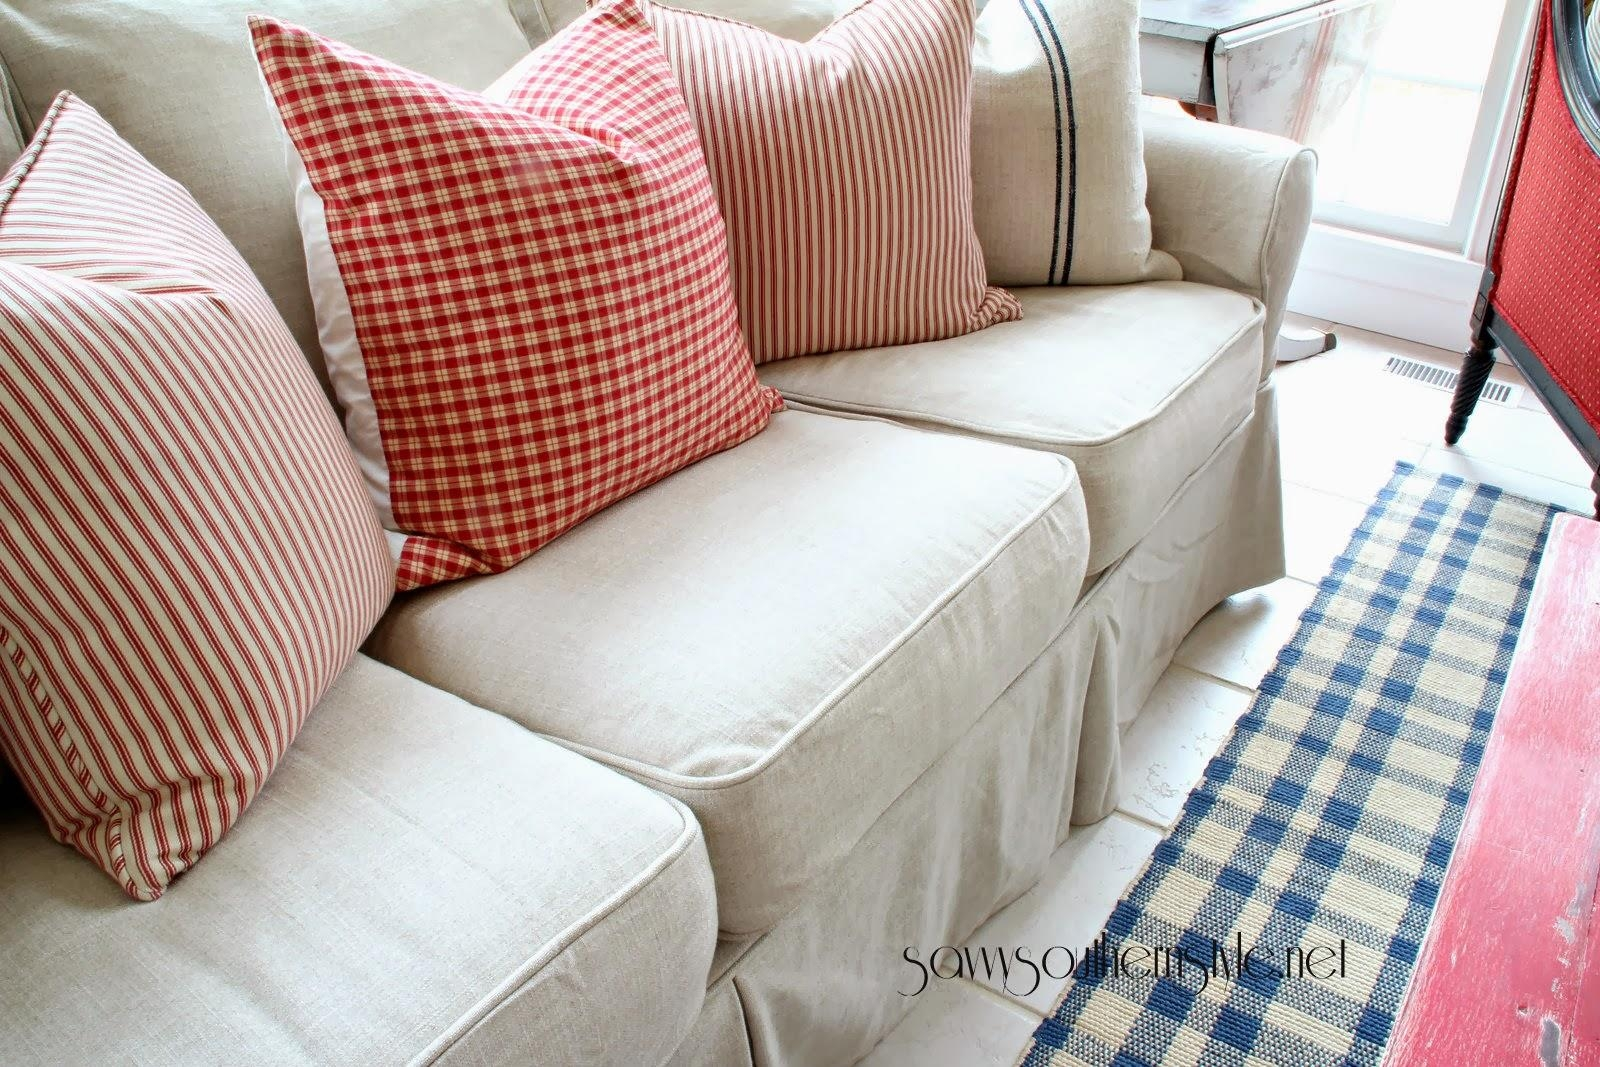 Custom Slipcovers And Couch Cover For Any Sofa Online With Canvas Sofa Slipcovers (View 19 of 20)